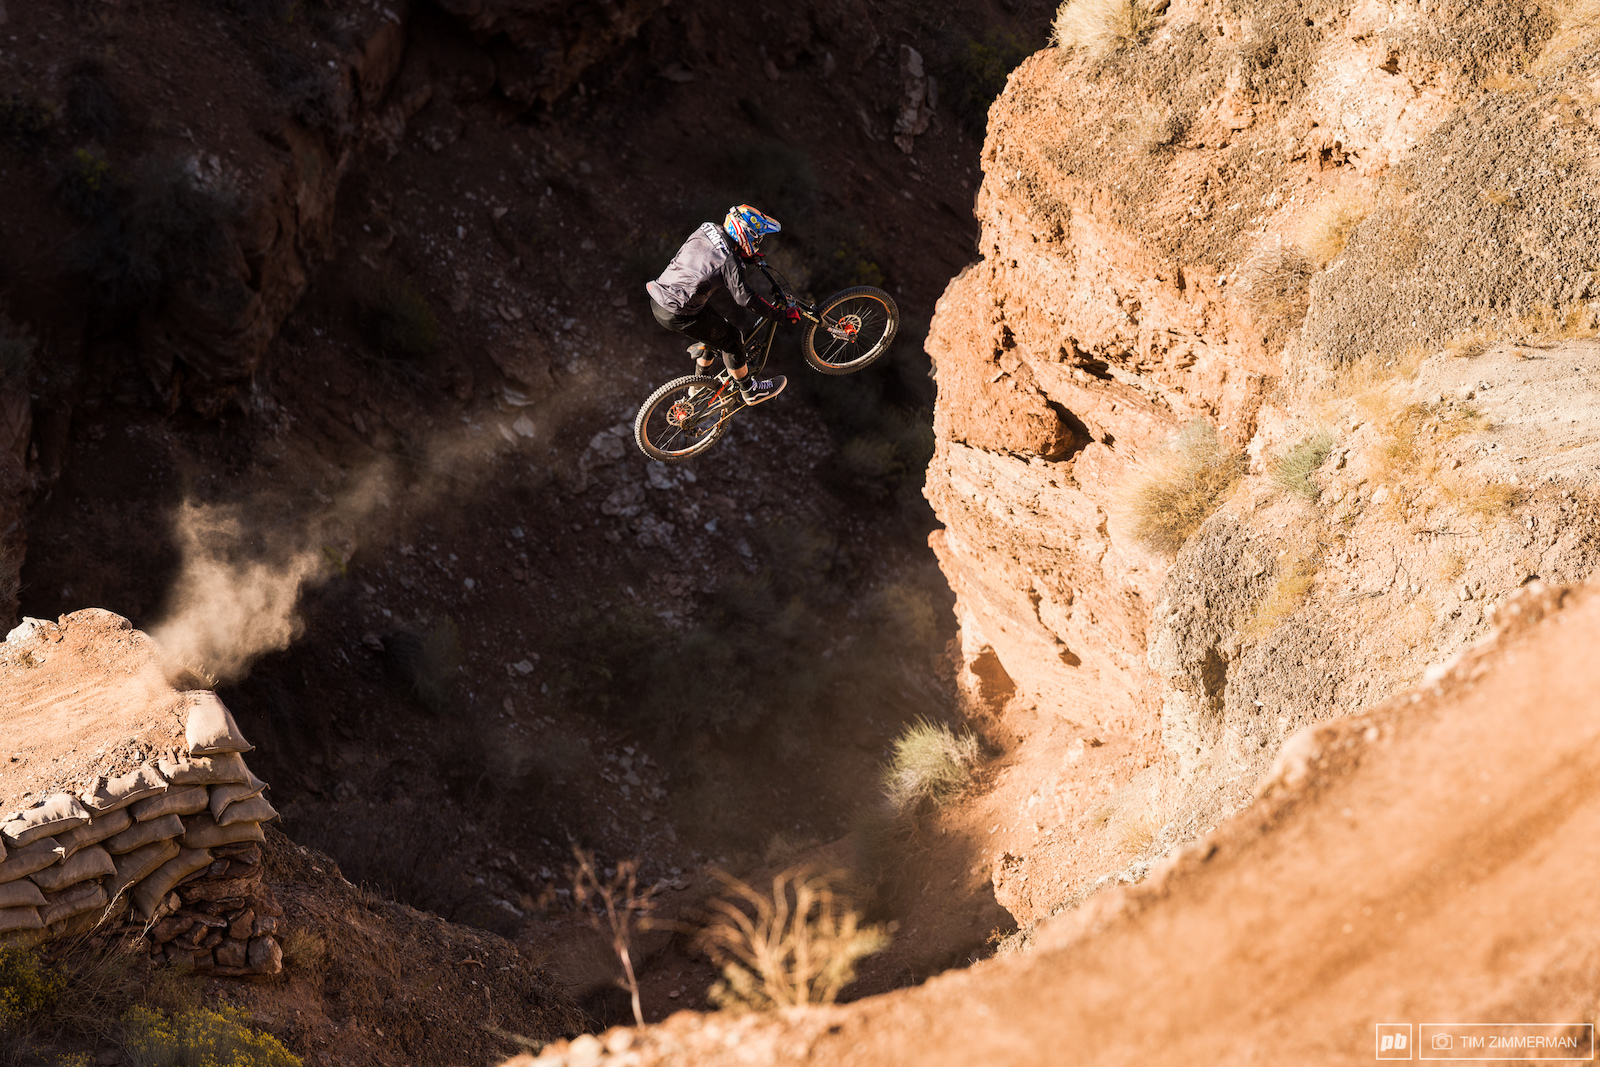 You know Kyle Strait s line is heavy when he uses a canyon gap as a casual setup jump for the next move.